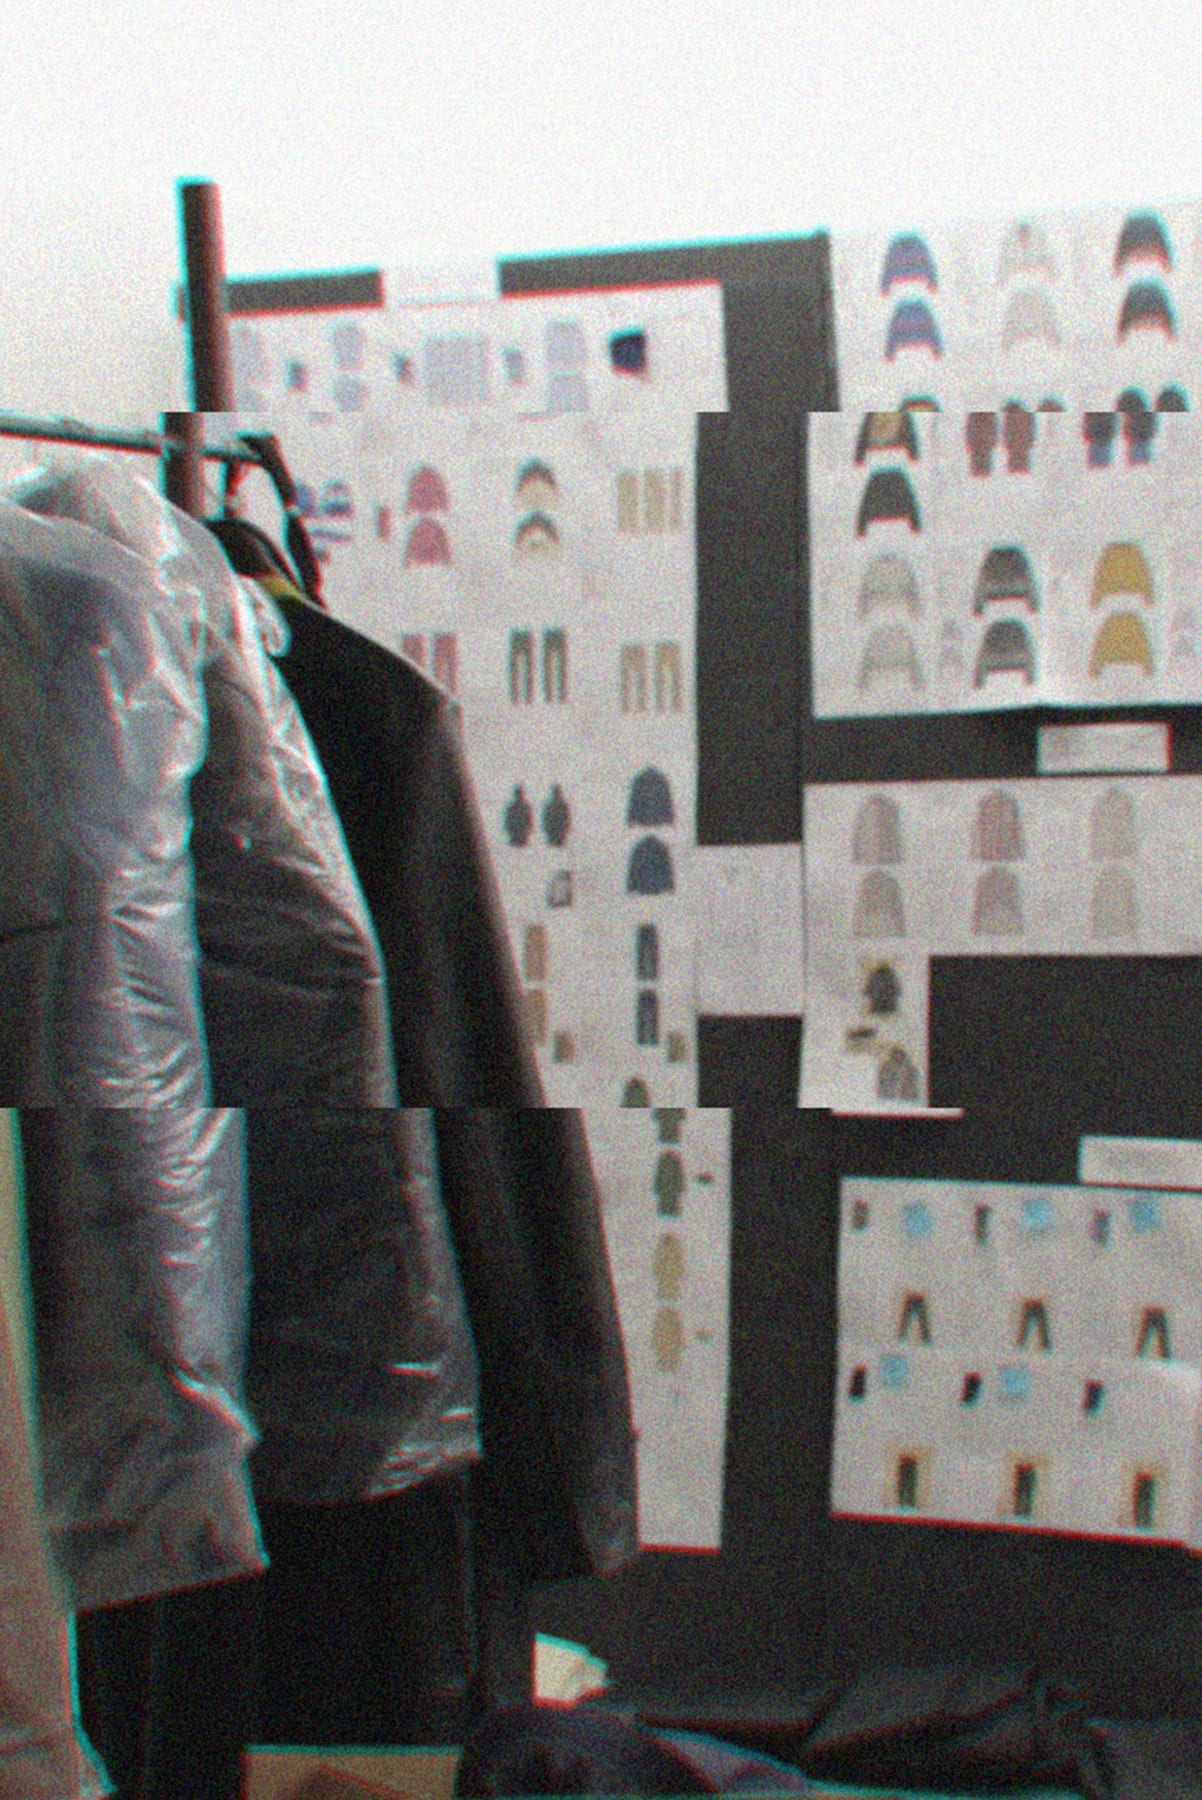 Look boards in the Rhude studio